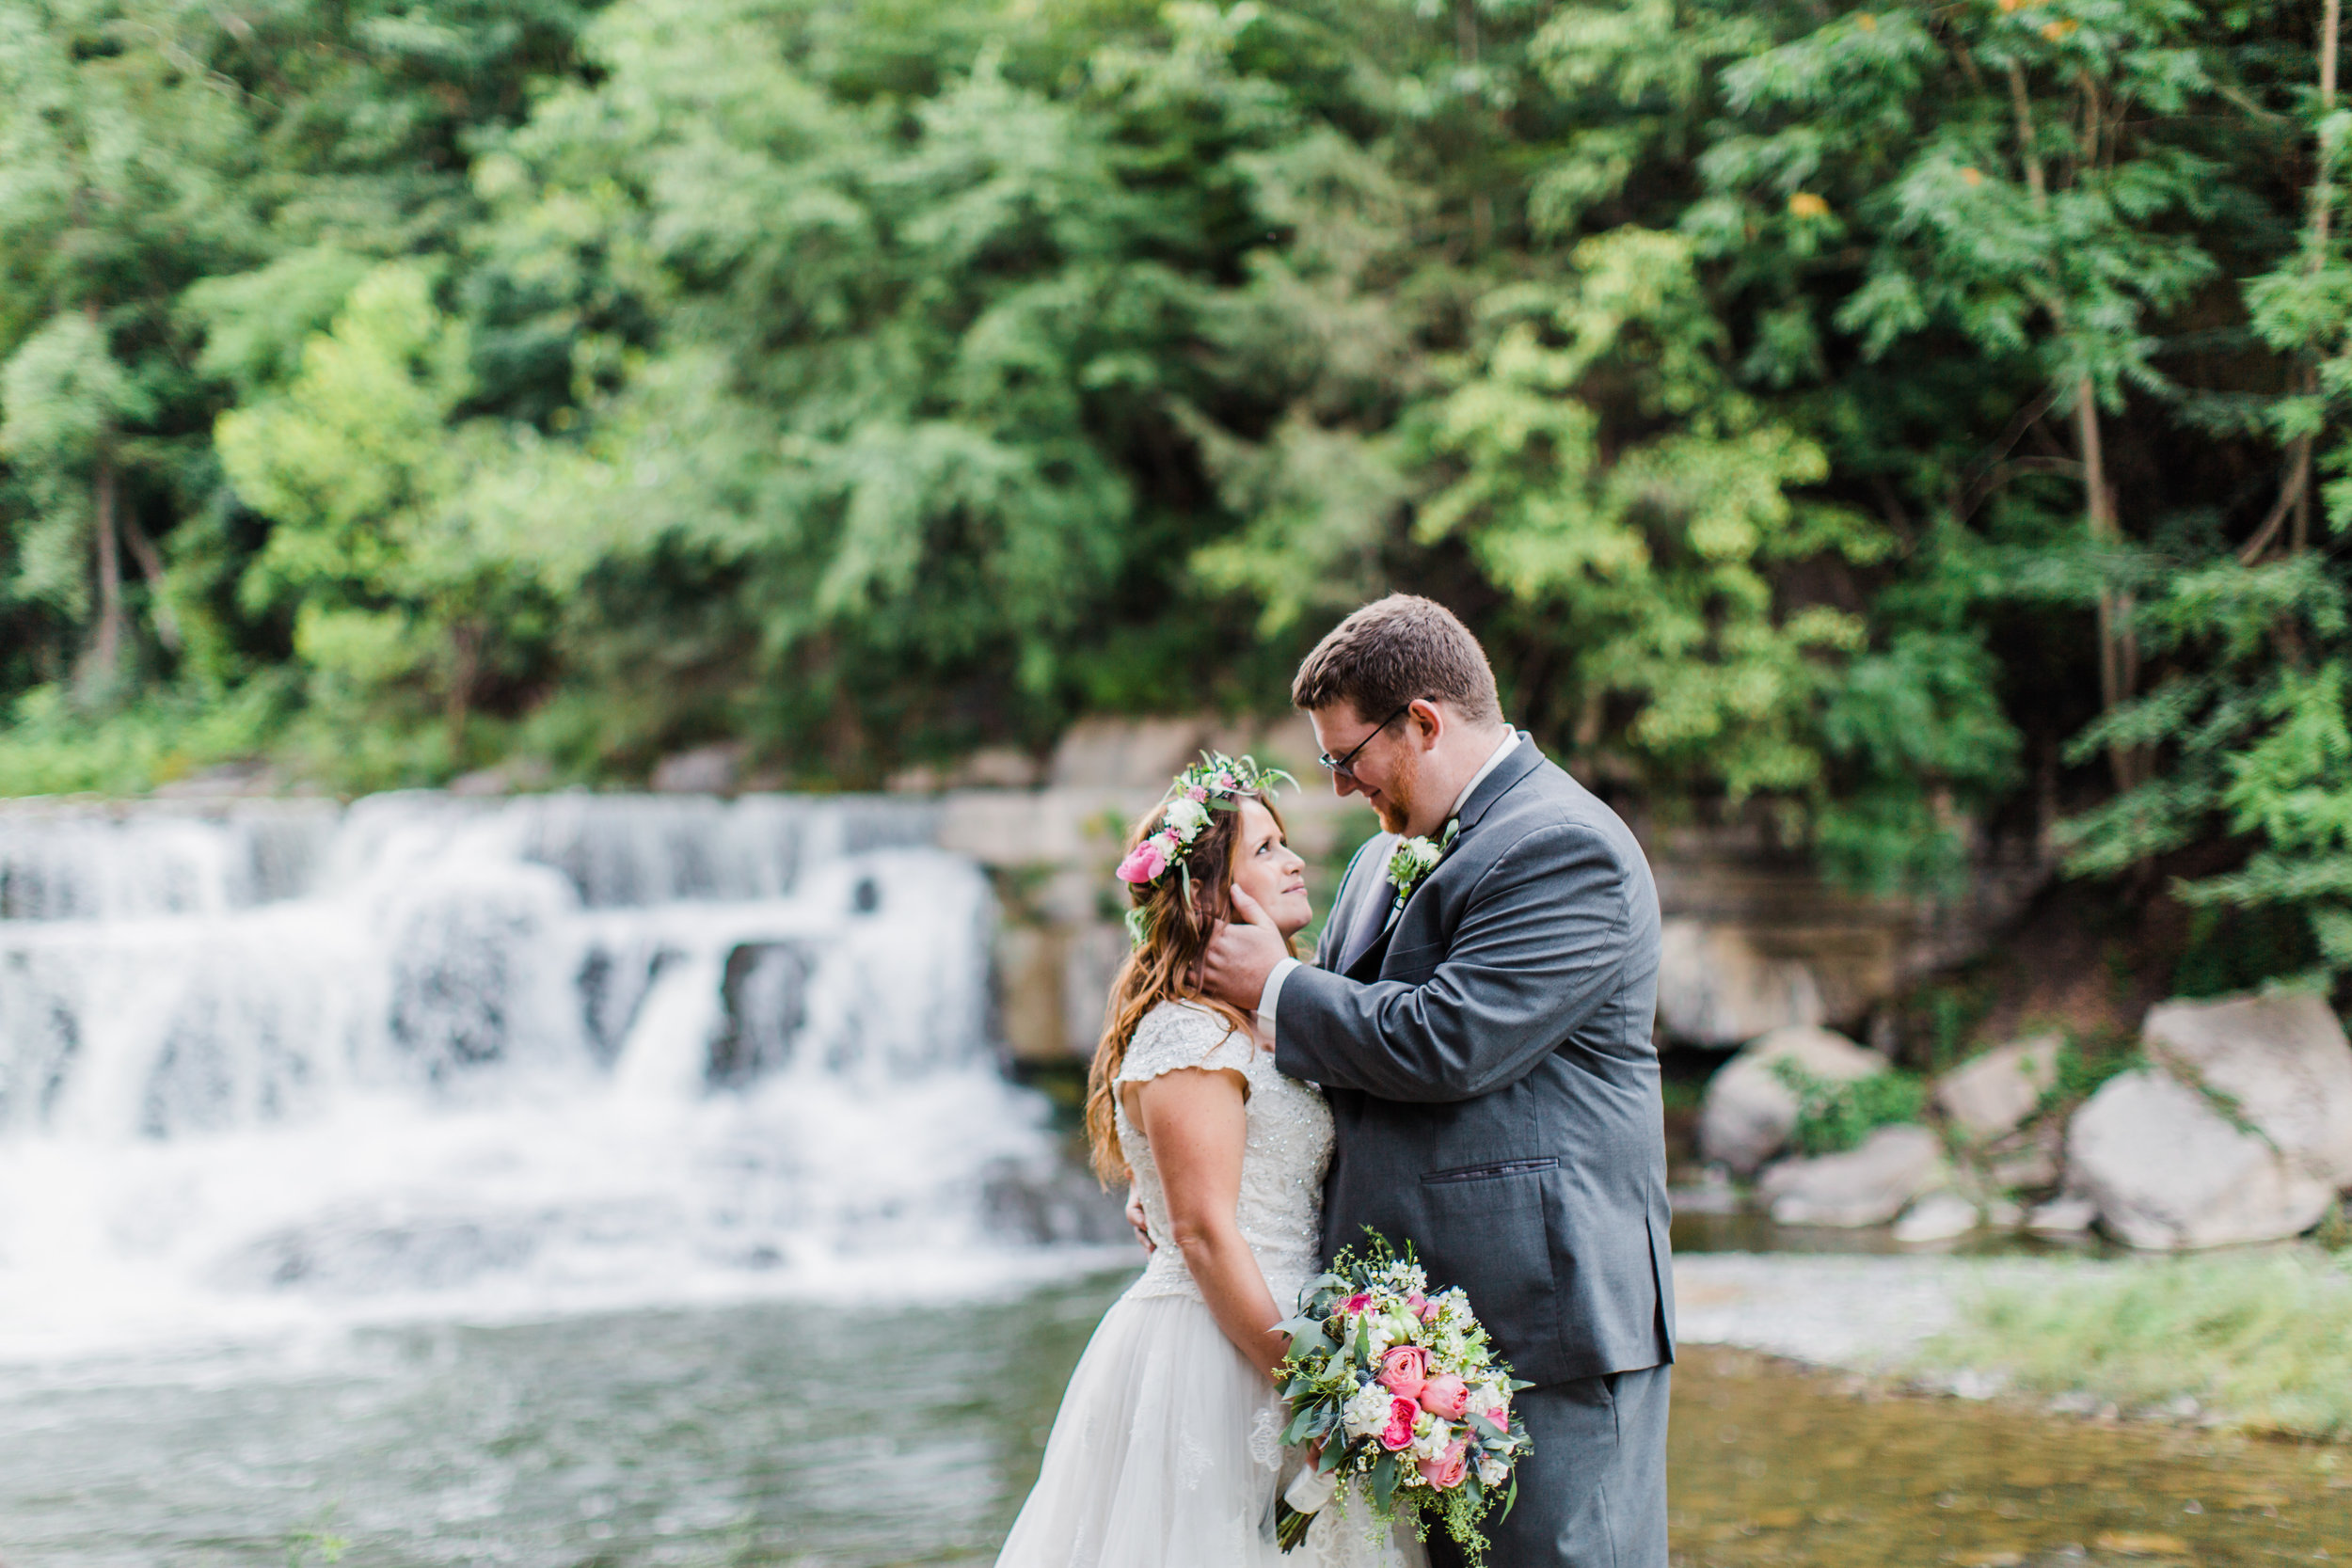 Destination Weddings at Taughannock Falls